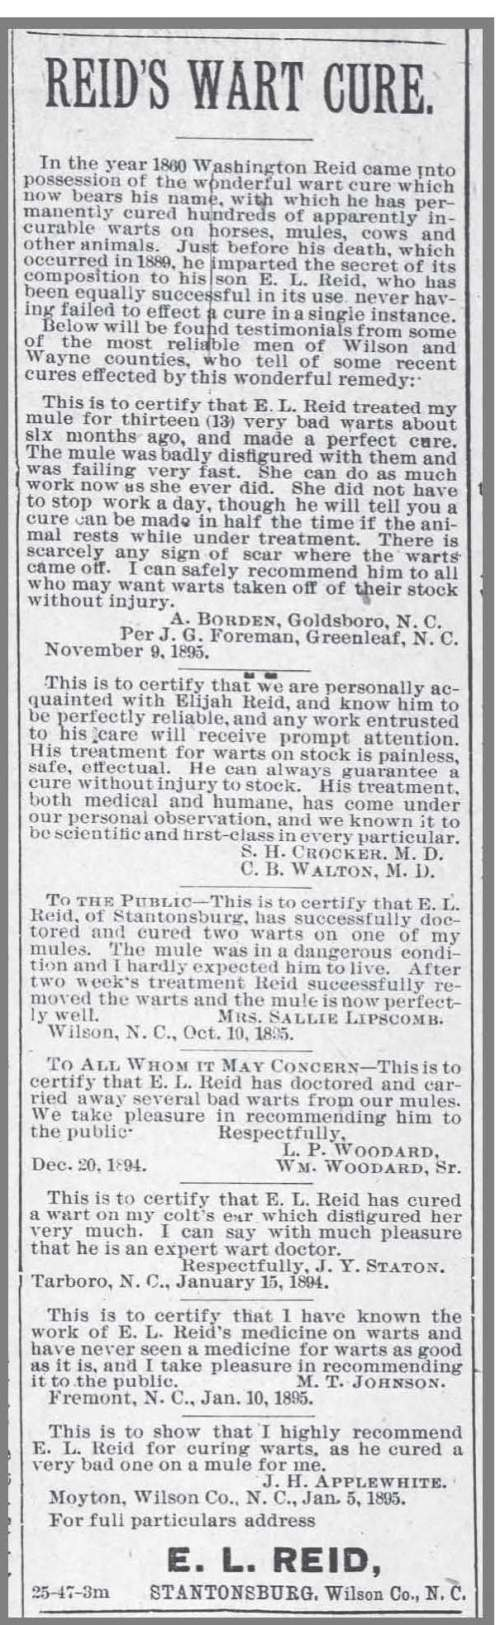 Wilson_Advance_12_26_1895_Reid_Wart_Cure